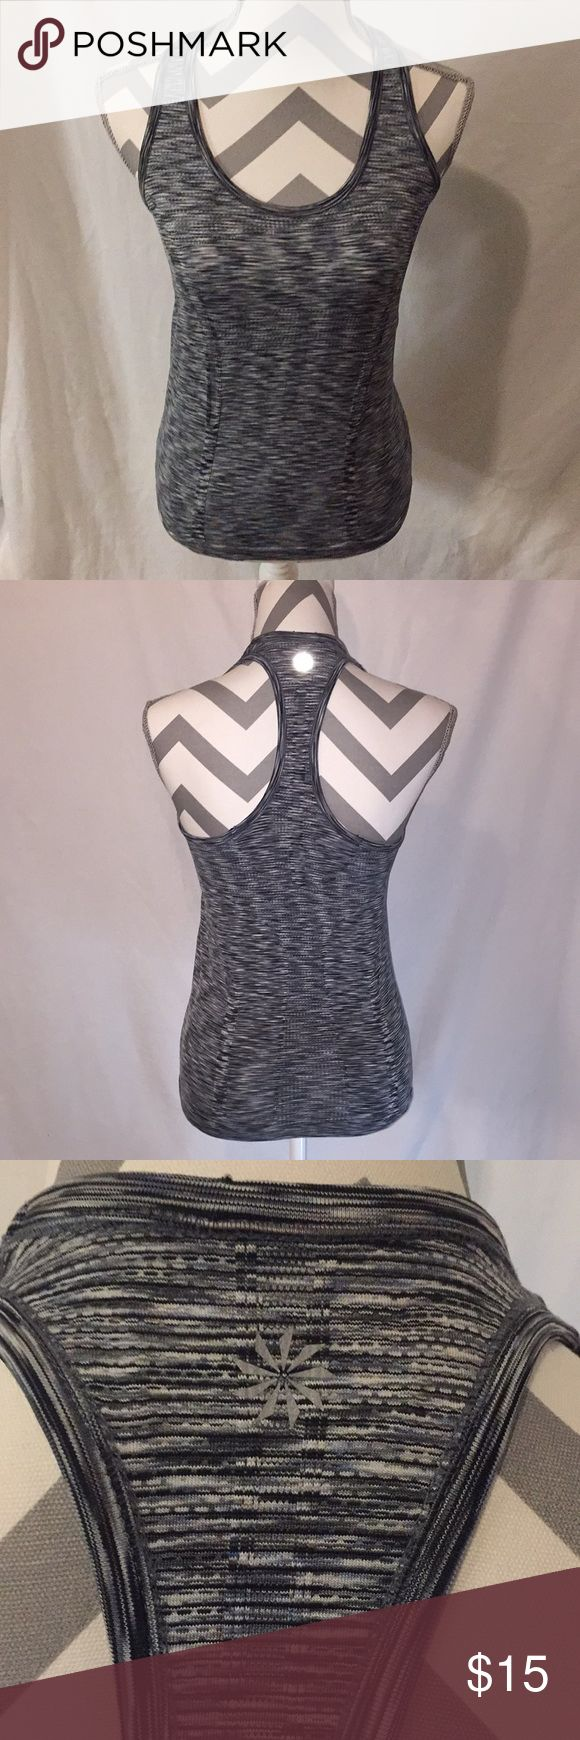 ATHLETA WOMENS FAST TRACK SPACE DYE TANK SIZE M Your favorite go to training tank for high intensity sweat sessions. Great for running, gym/training, and studio workouts. Racerback gives your arms freedom to move, has shirring along the sides so it fits to flatter, and has gripping dots along hem to stop it from riding up. Athleta Tops Tank Tops